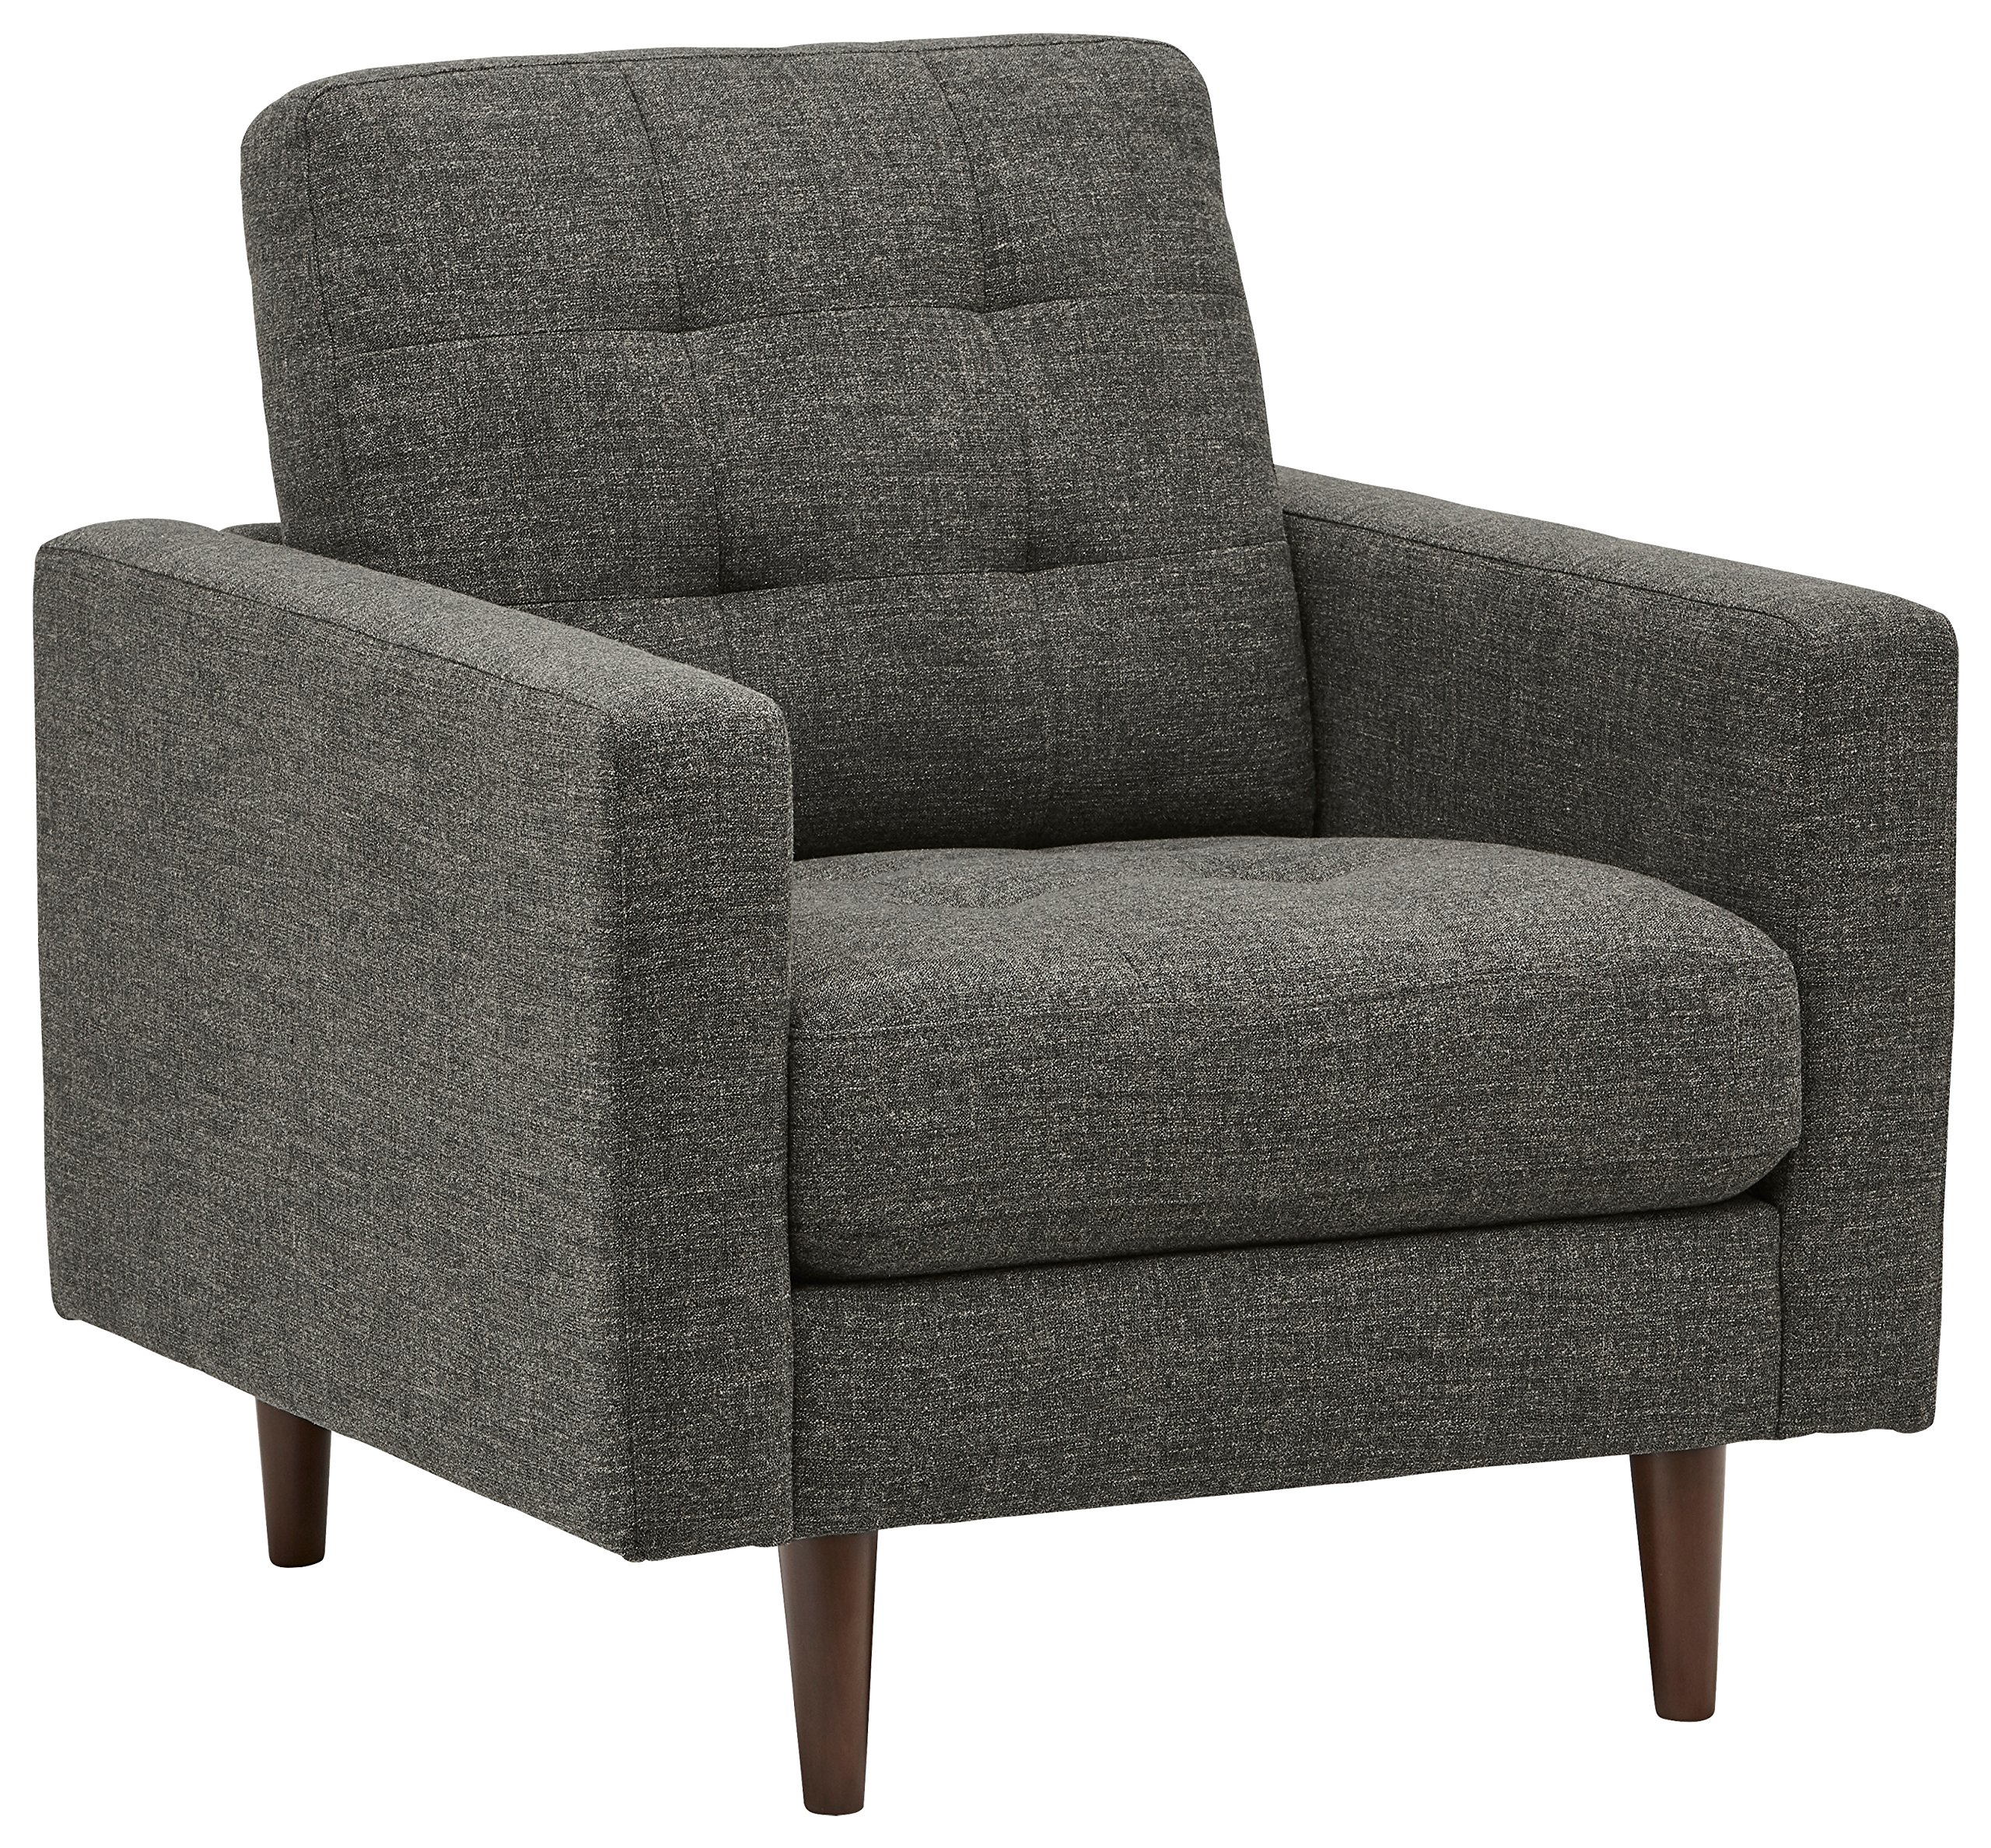 Rivet Cove Modern Tufted Accent Chair with Tapered Legs, Mid-Century, 32.7''W, Dark Grey by Rivet